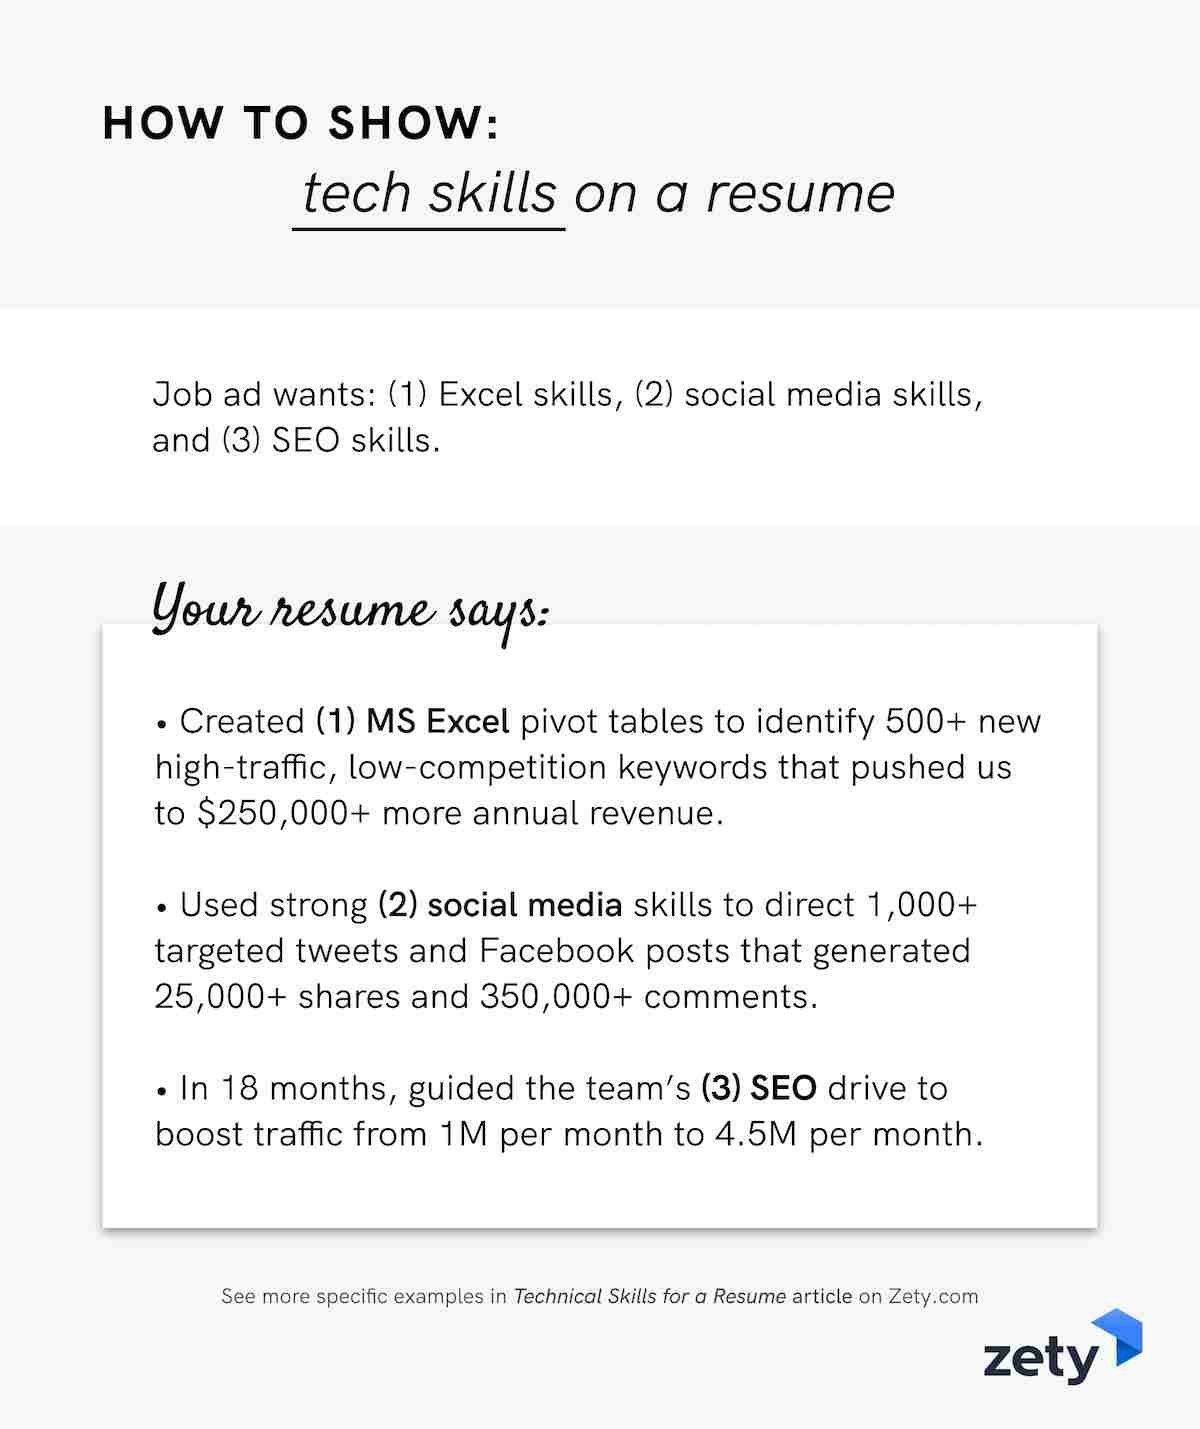 technical skills for resume with examples to show tech on meeting coordinator software Resume Technical Skills For Resume